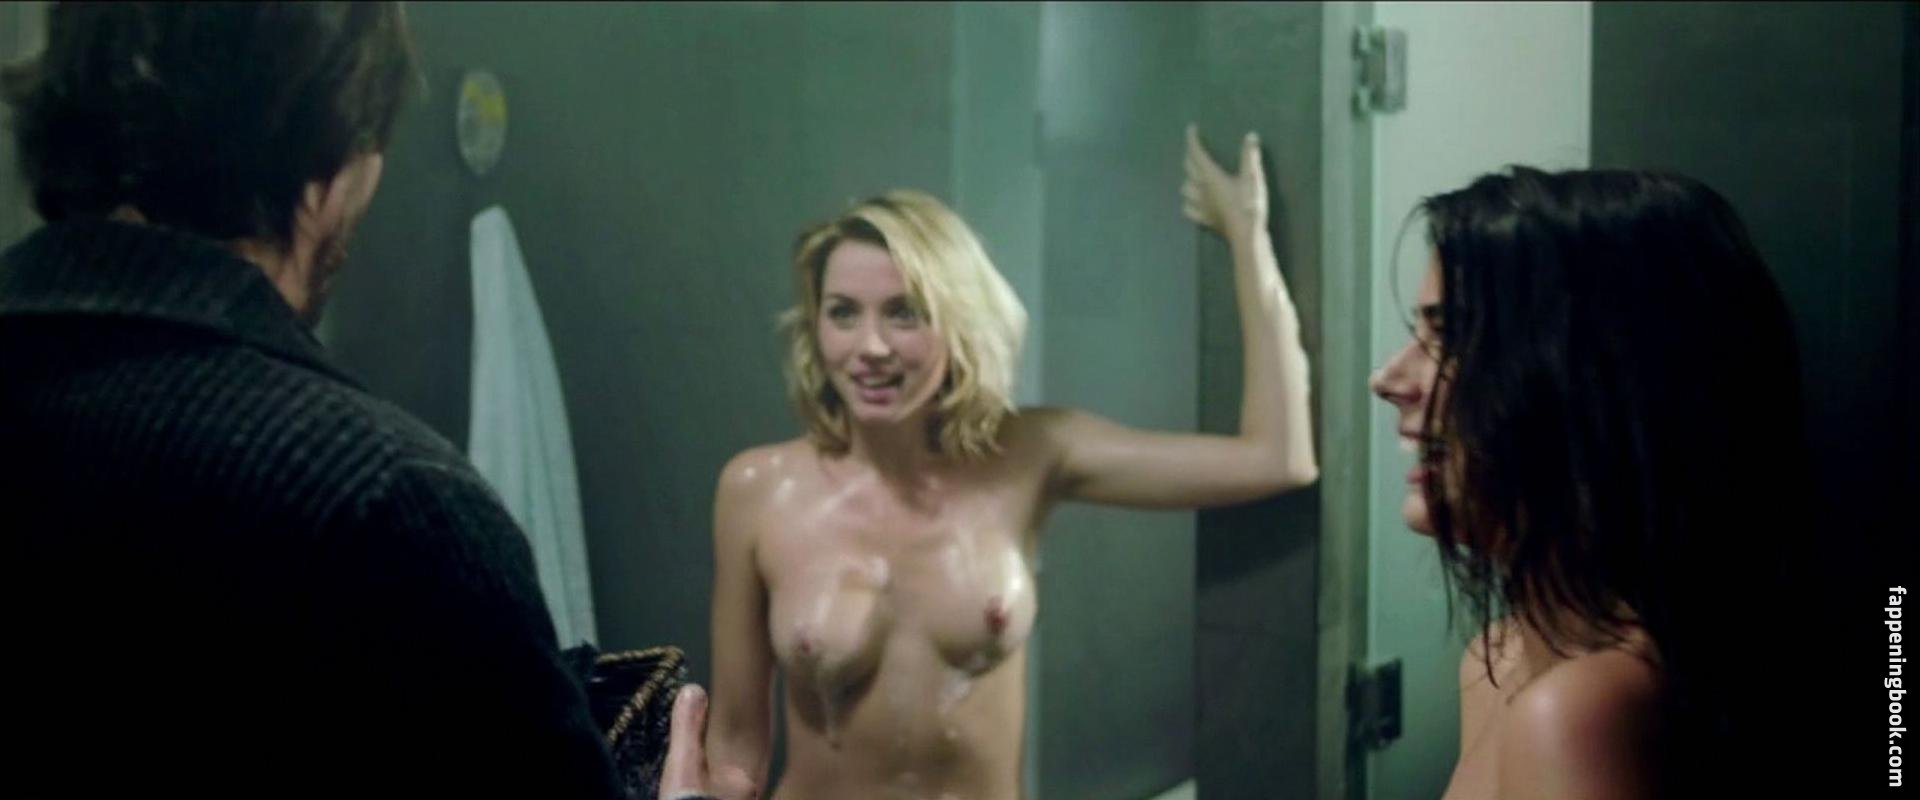 Ana De Armas Porno ana de armas nude, sexy, the fappening, uncensored - photo